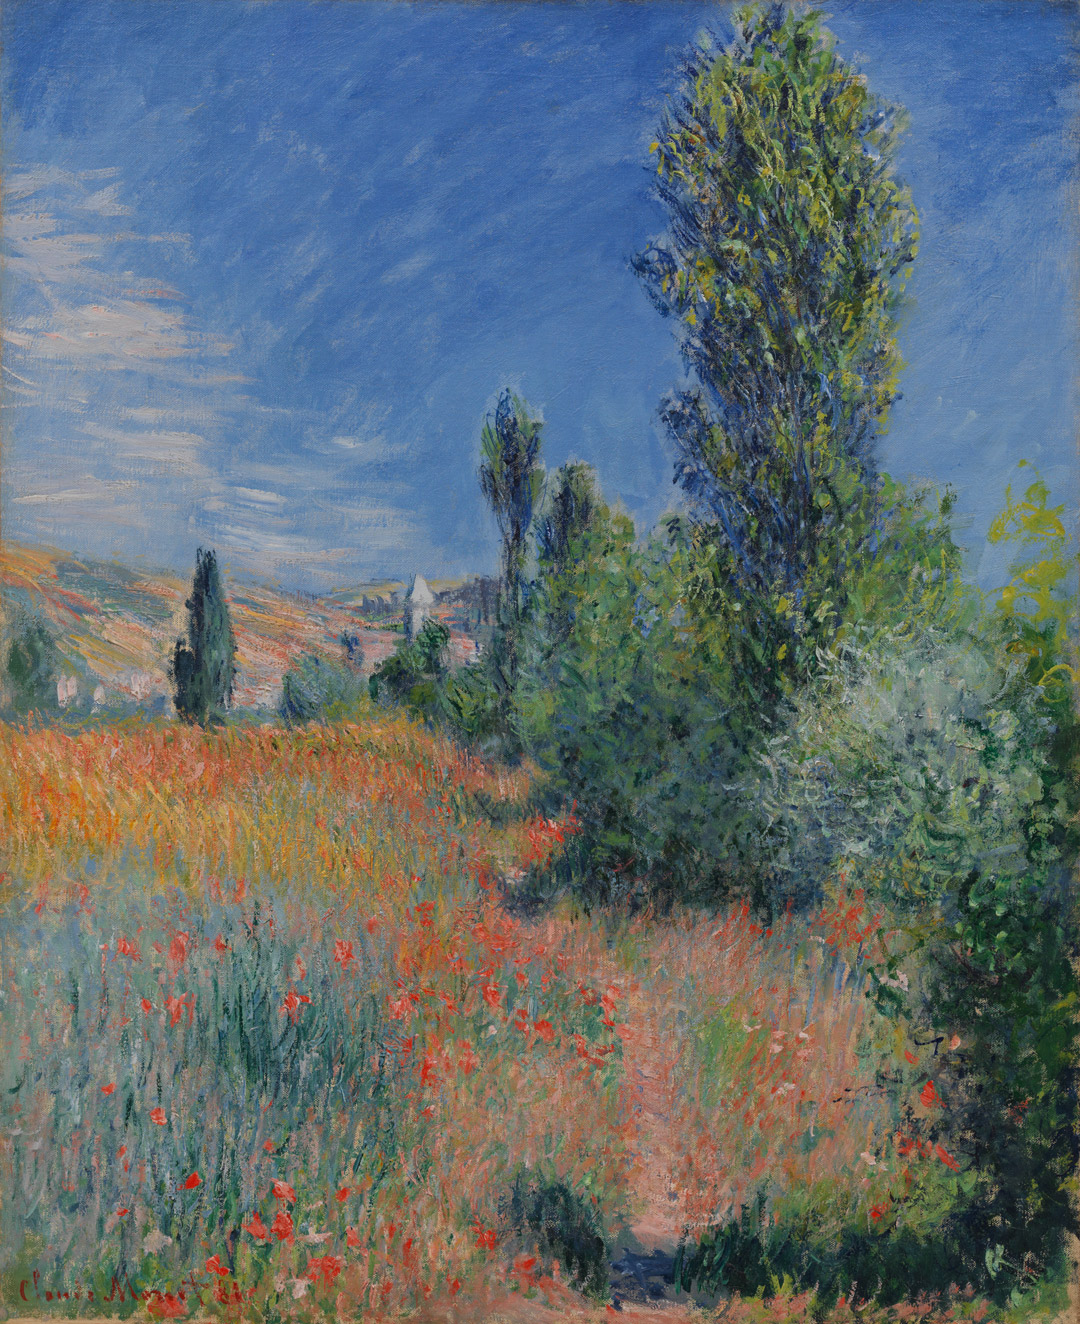 Landscape on île Saint-Martin, Claude Monet, 1881.